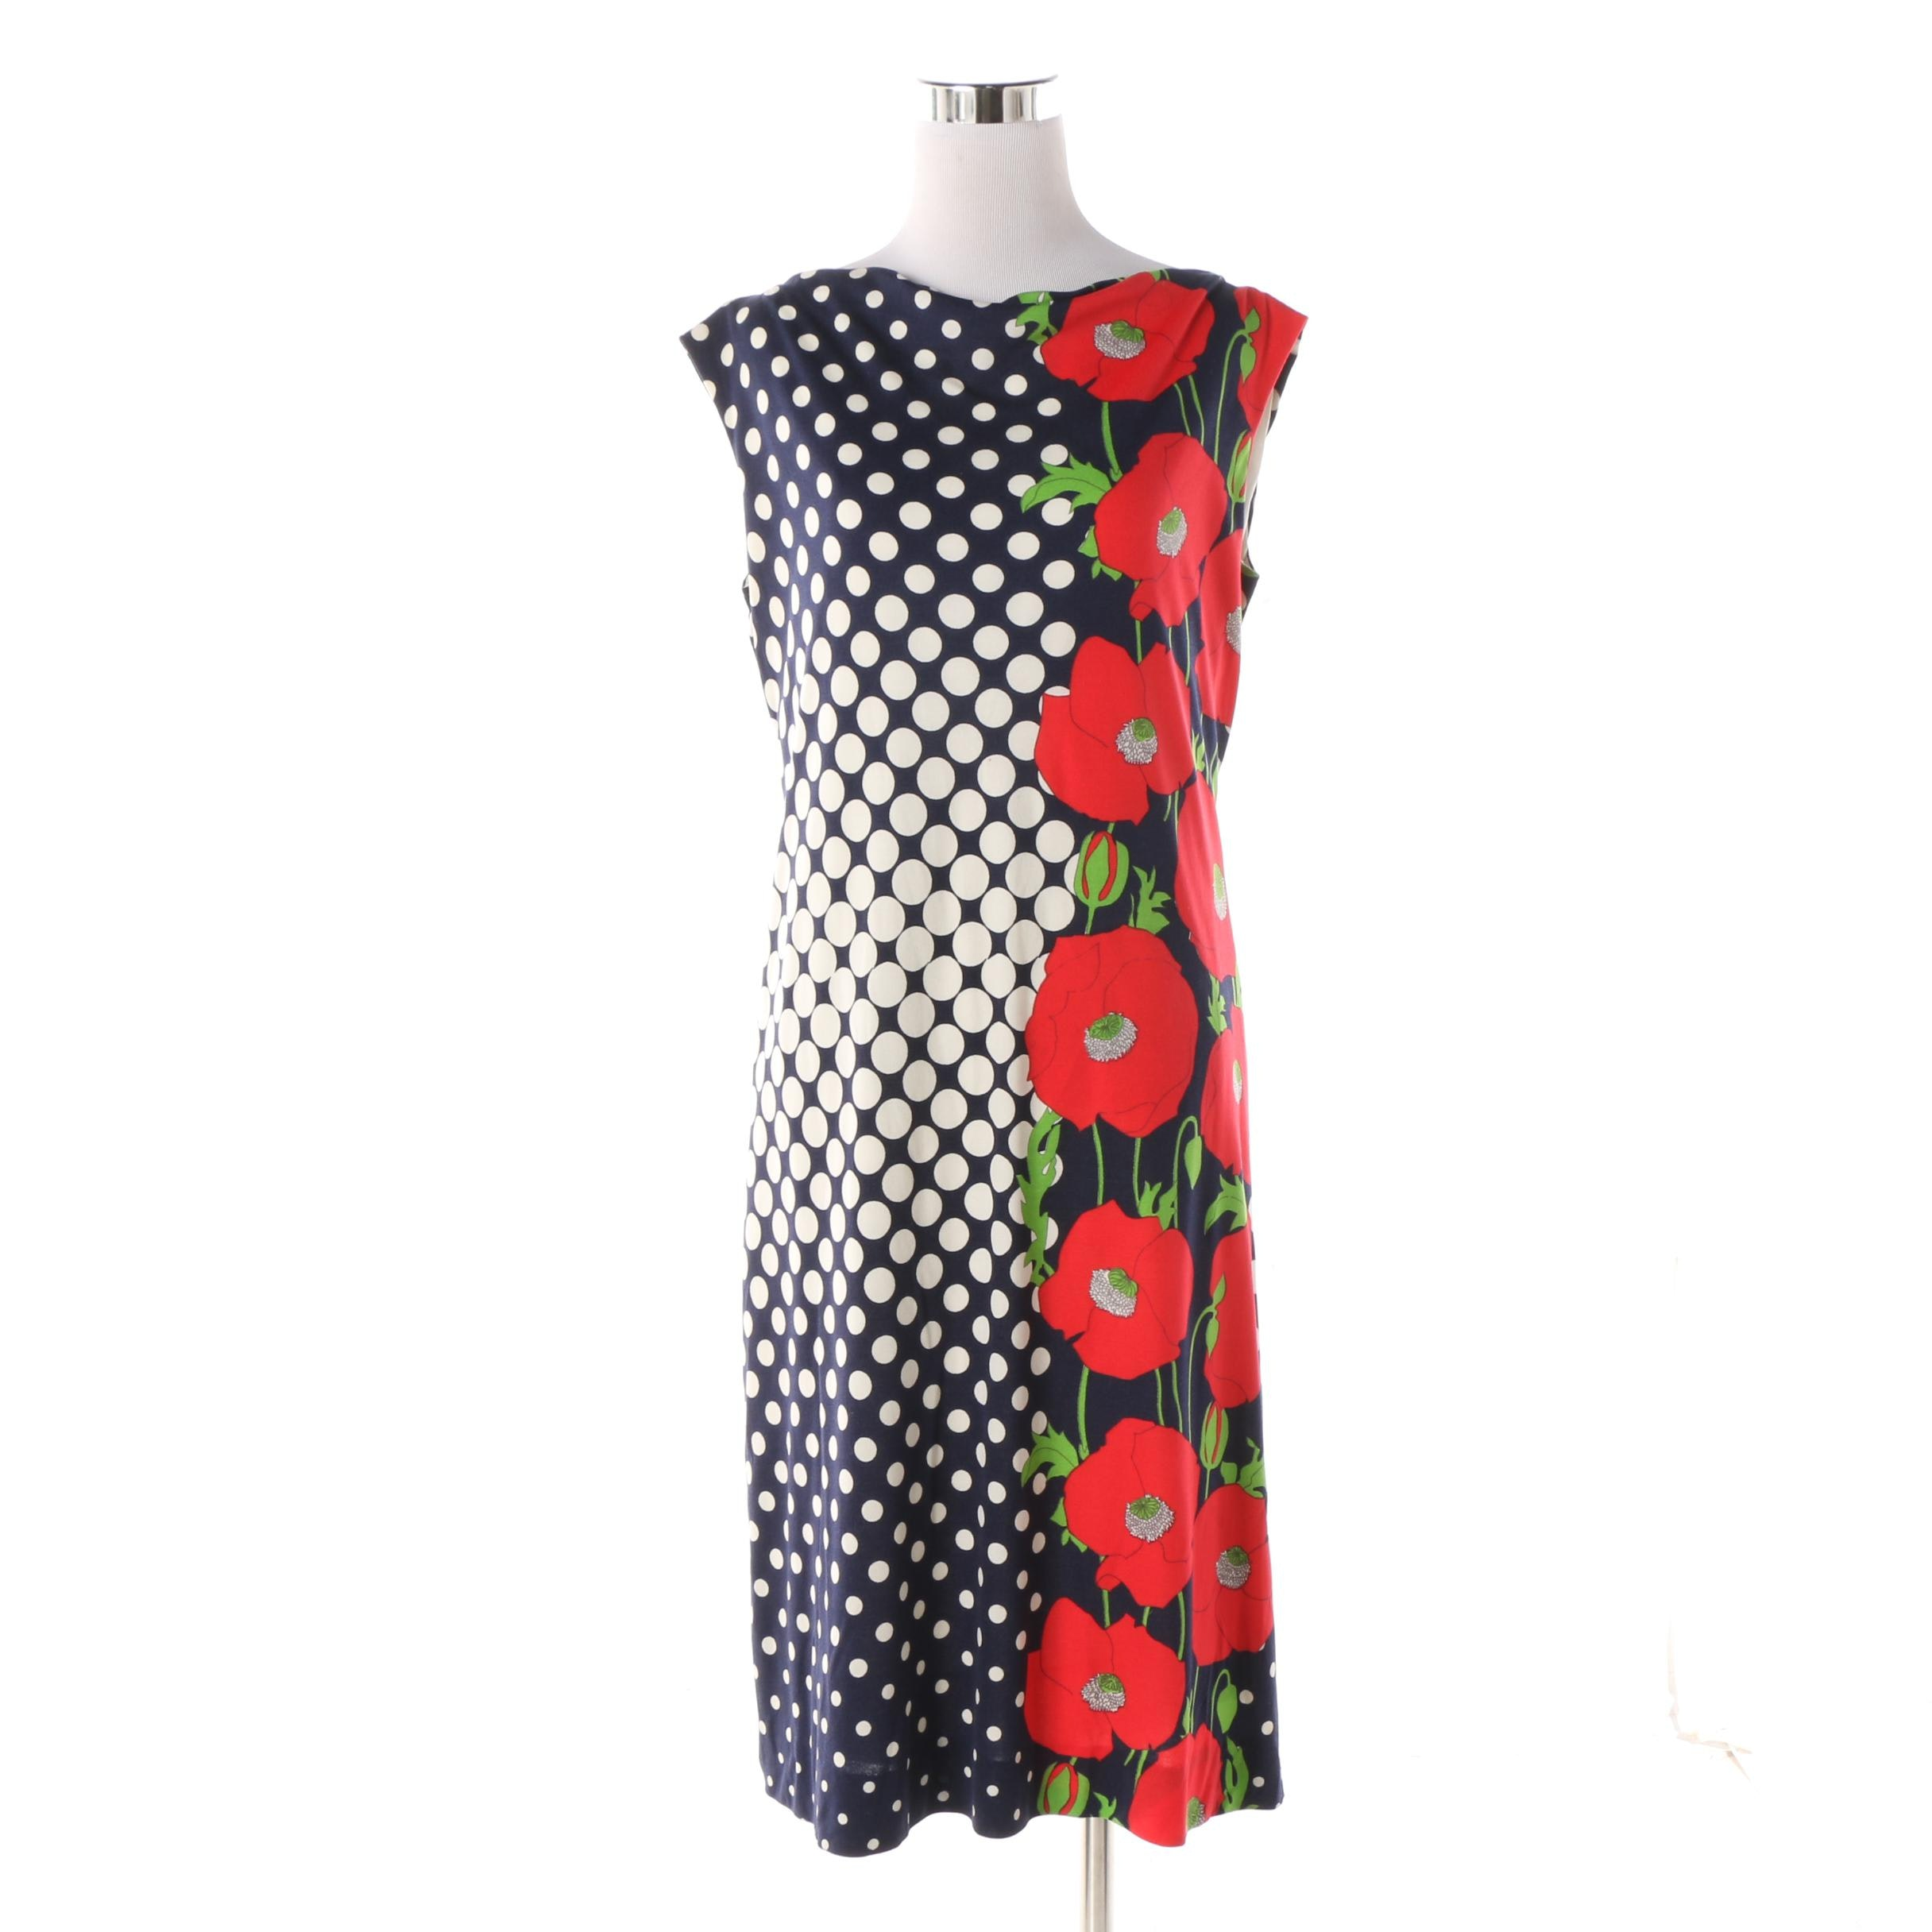 1960s Vintage Adele Simpson Floral Polka Dot Jersey Sheath Dress